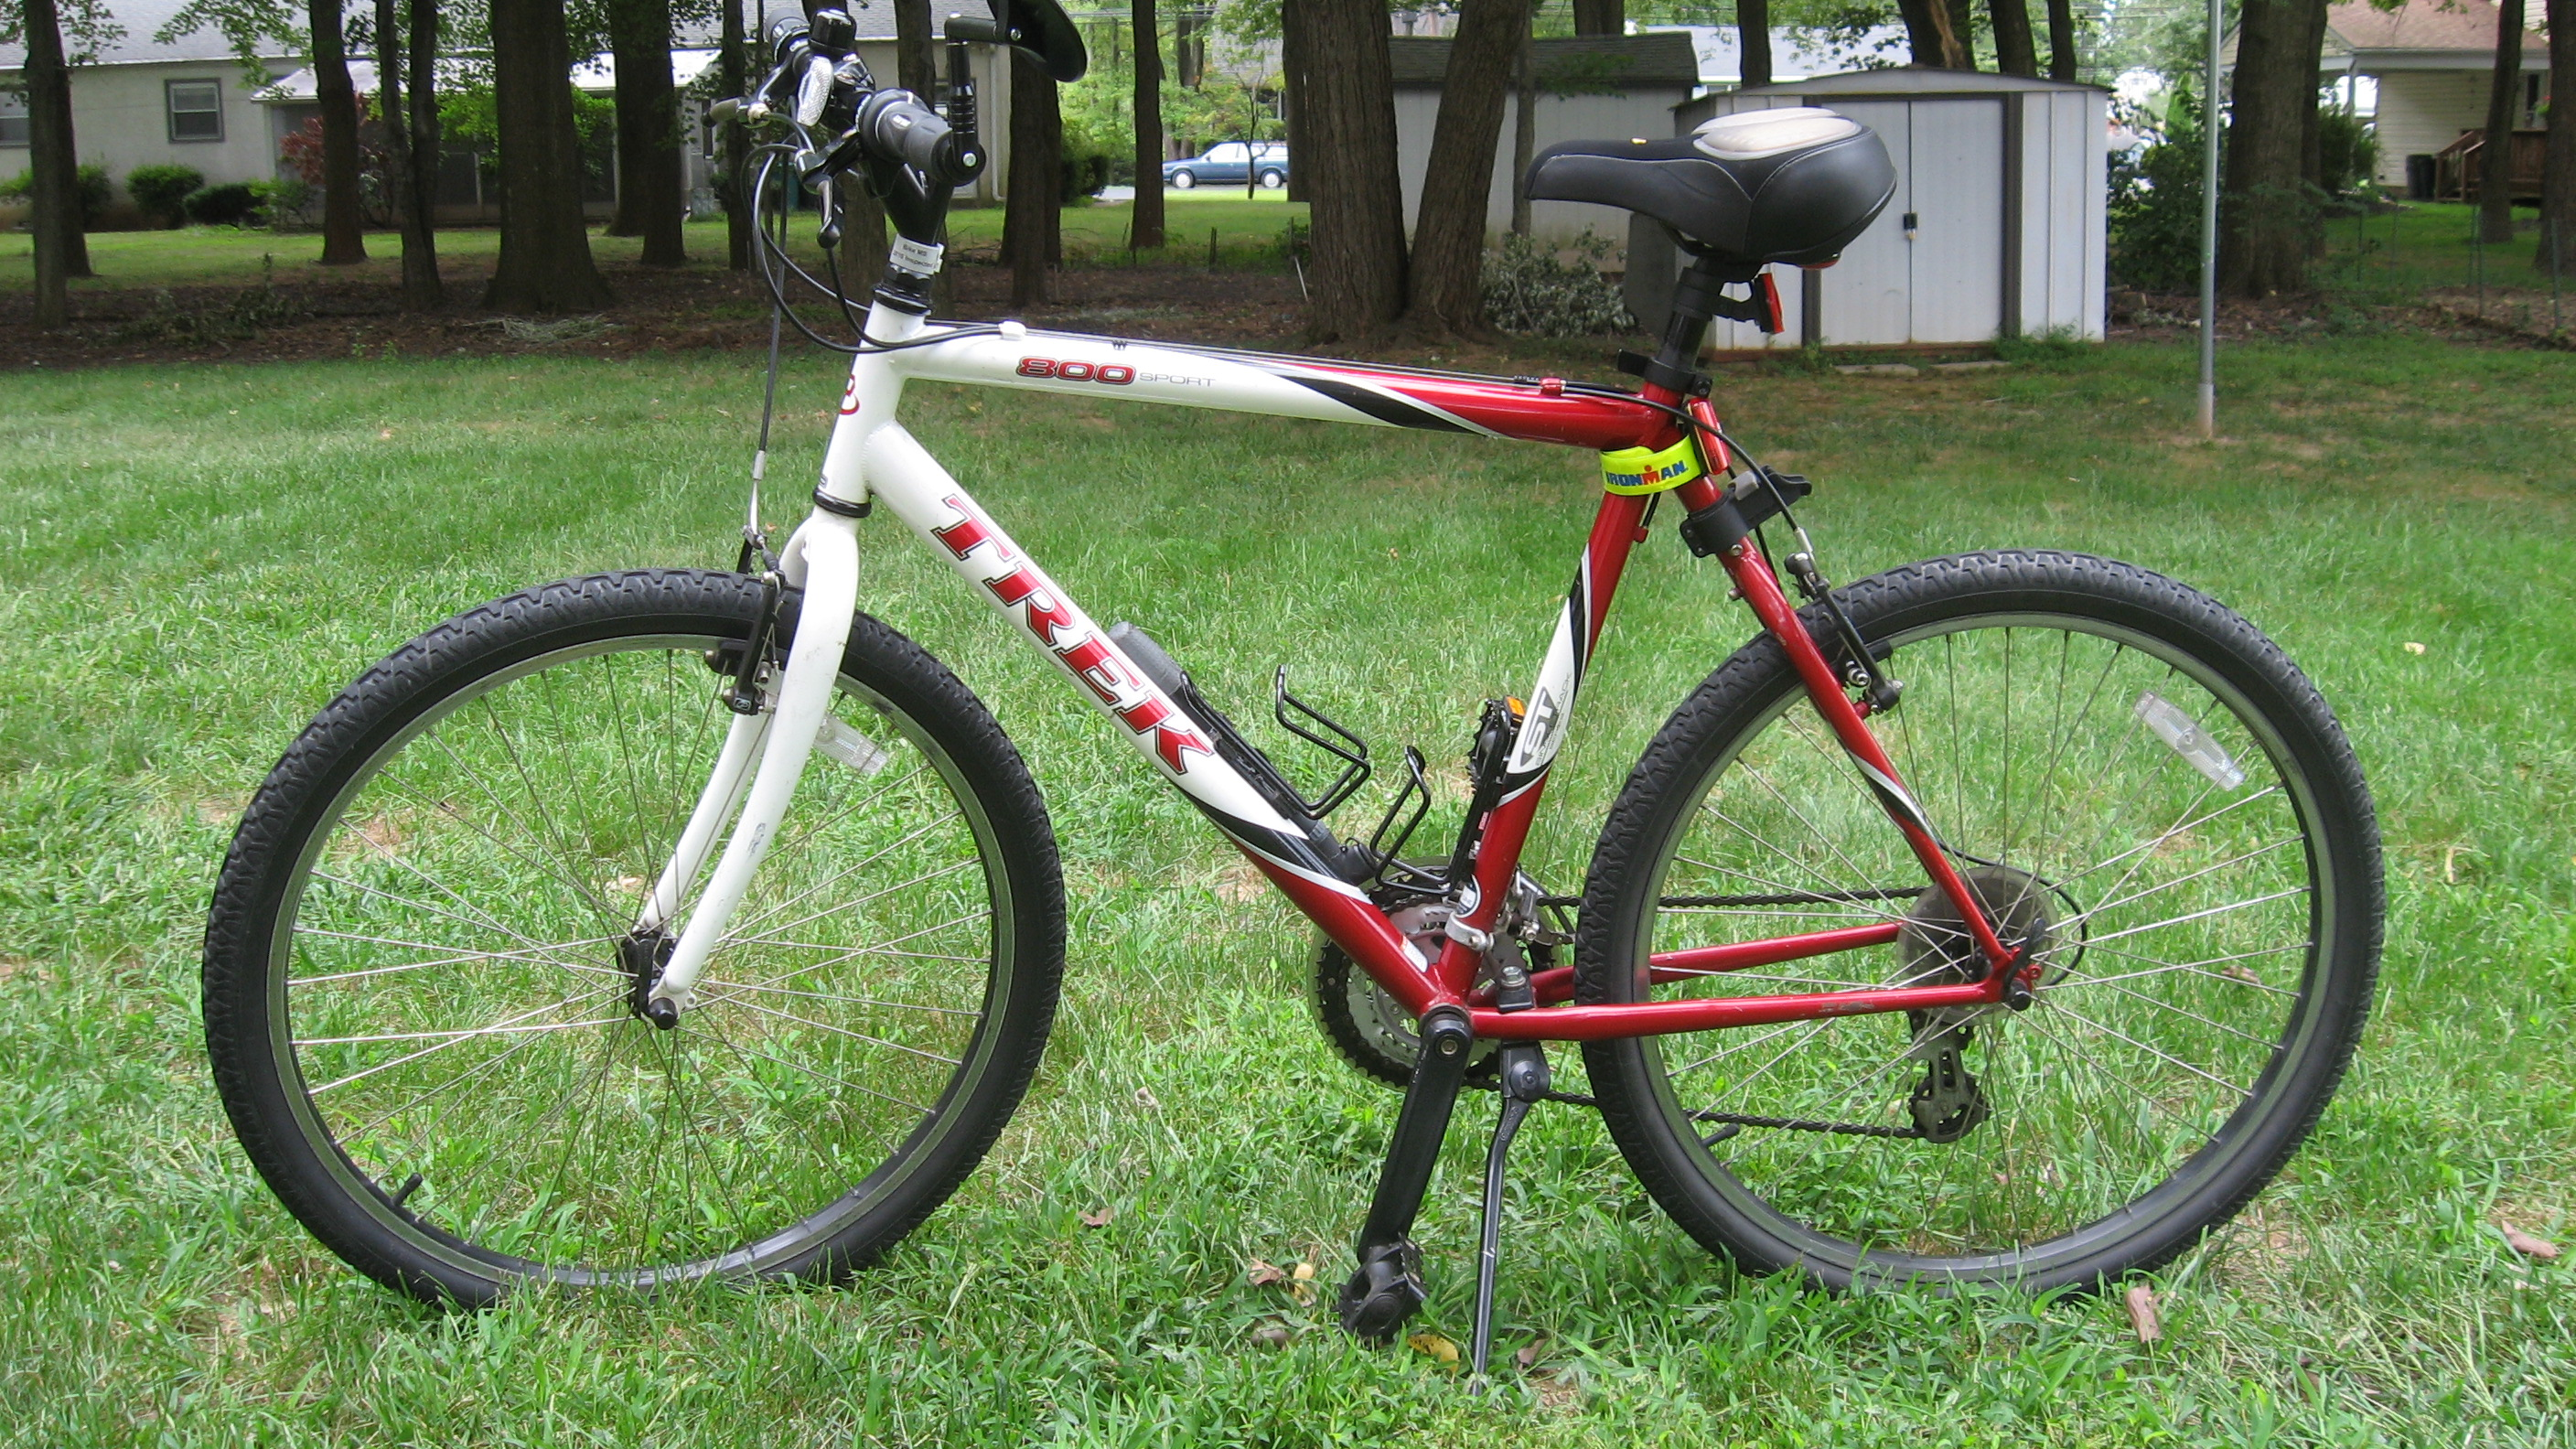 Bike Cannondale Centurion 1997 Value A steel framed Trek